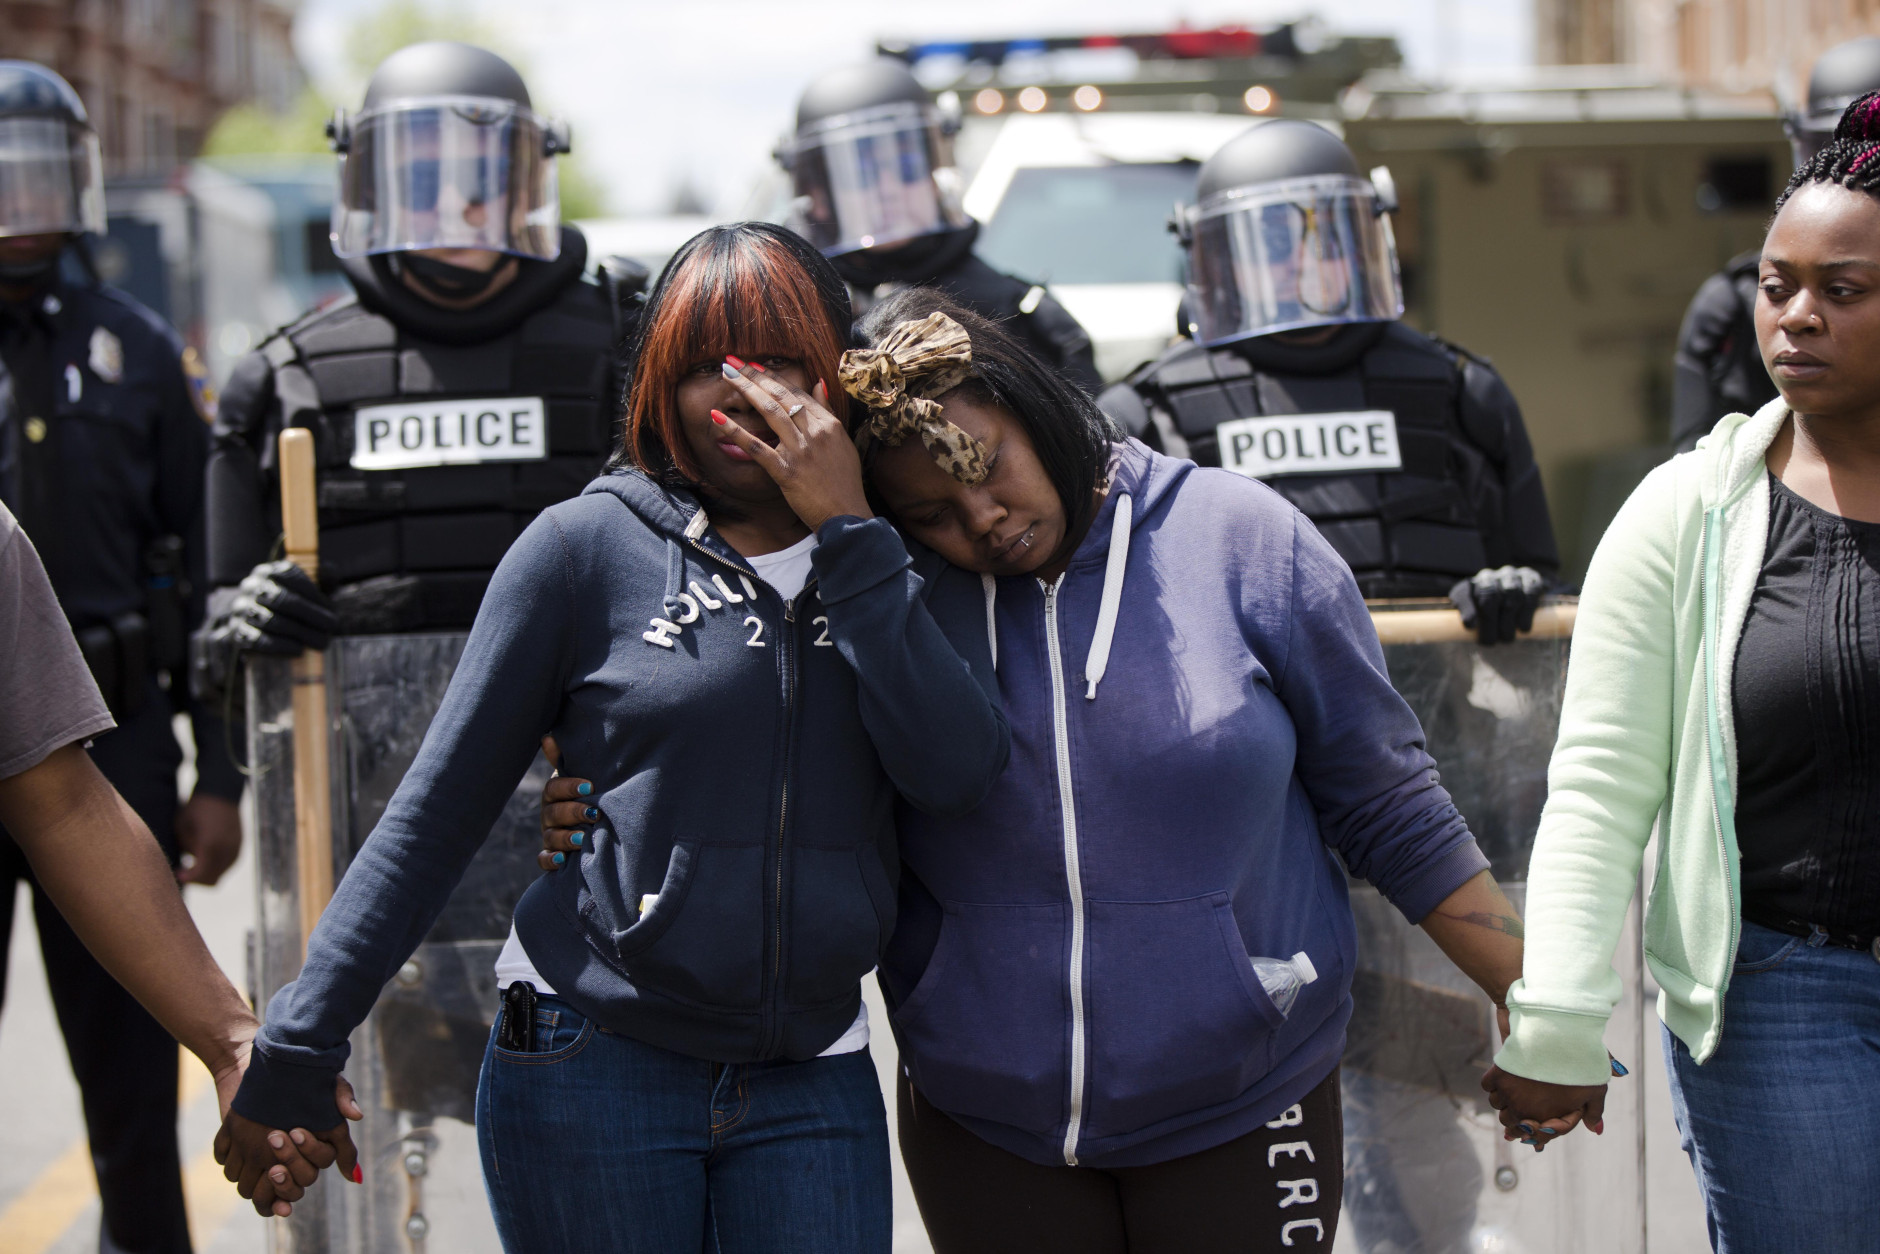 Jerrie Mckenny, center left, and her sister, Tia Sexton embrace as people sing the hymn Amazing Grace Tuesday, April 28, 2015, in Baltimore, in the aftermath of rioting following Monday's funeral for Freddie Gray, who died in police custody. The streets were largely calm in the morning and into the afternoon, but authorities remained on edge against the possibility of another outbreak of looting, vandalism and arson.  (AP Photo/Matt Rourke)